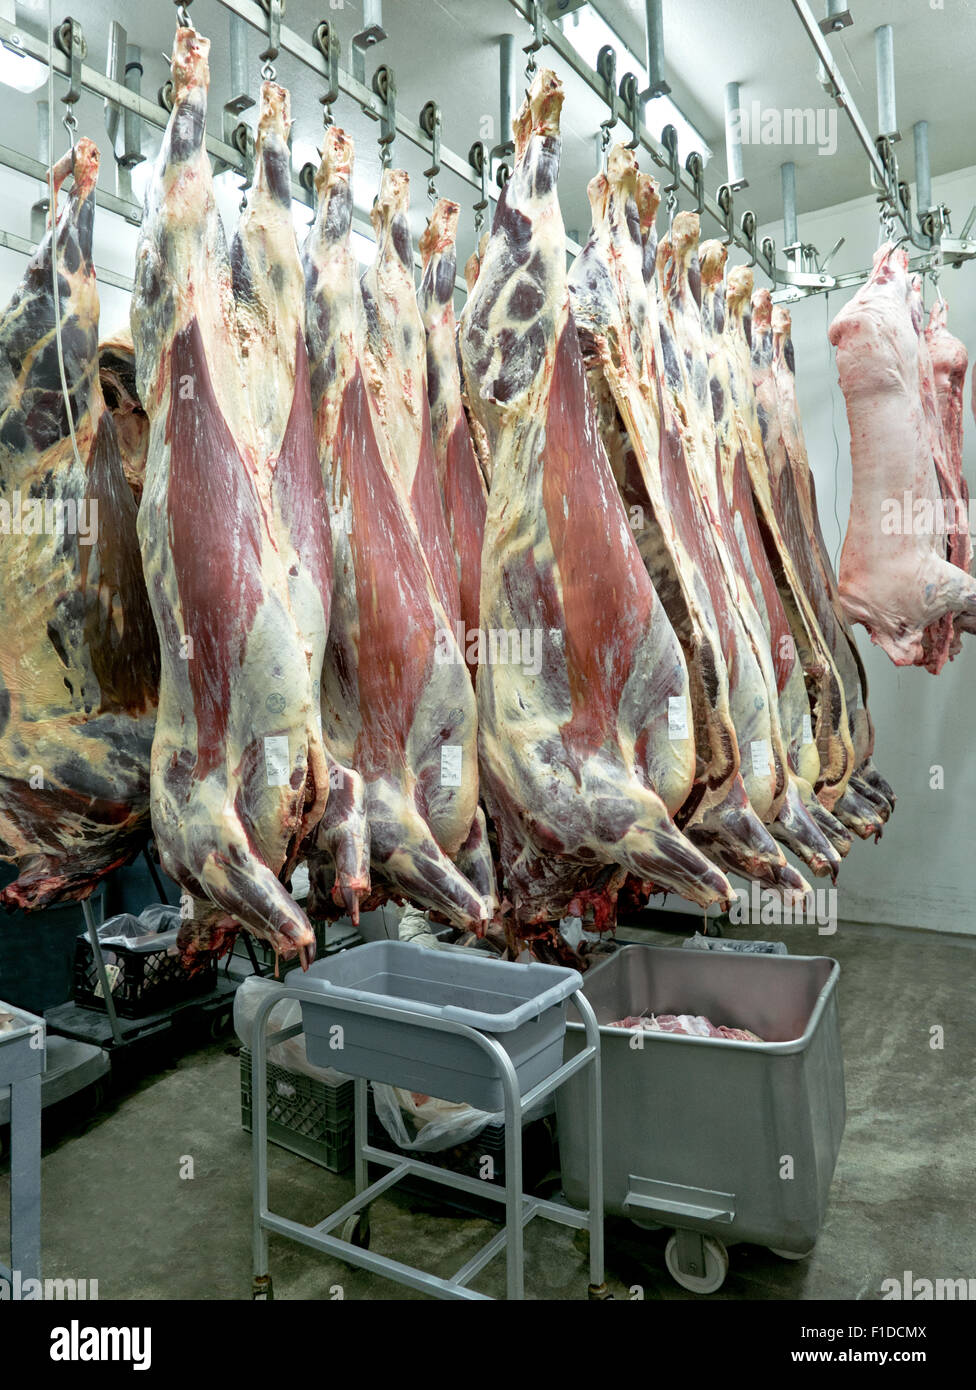 Aging beef & pork carcasses hanging in cooler. - Stock Image